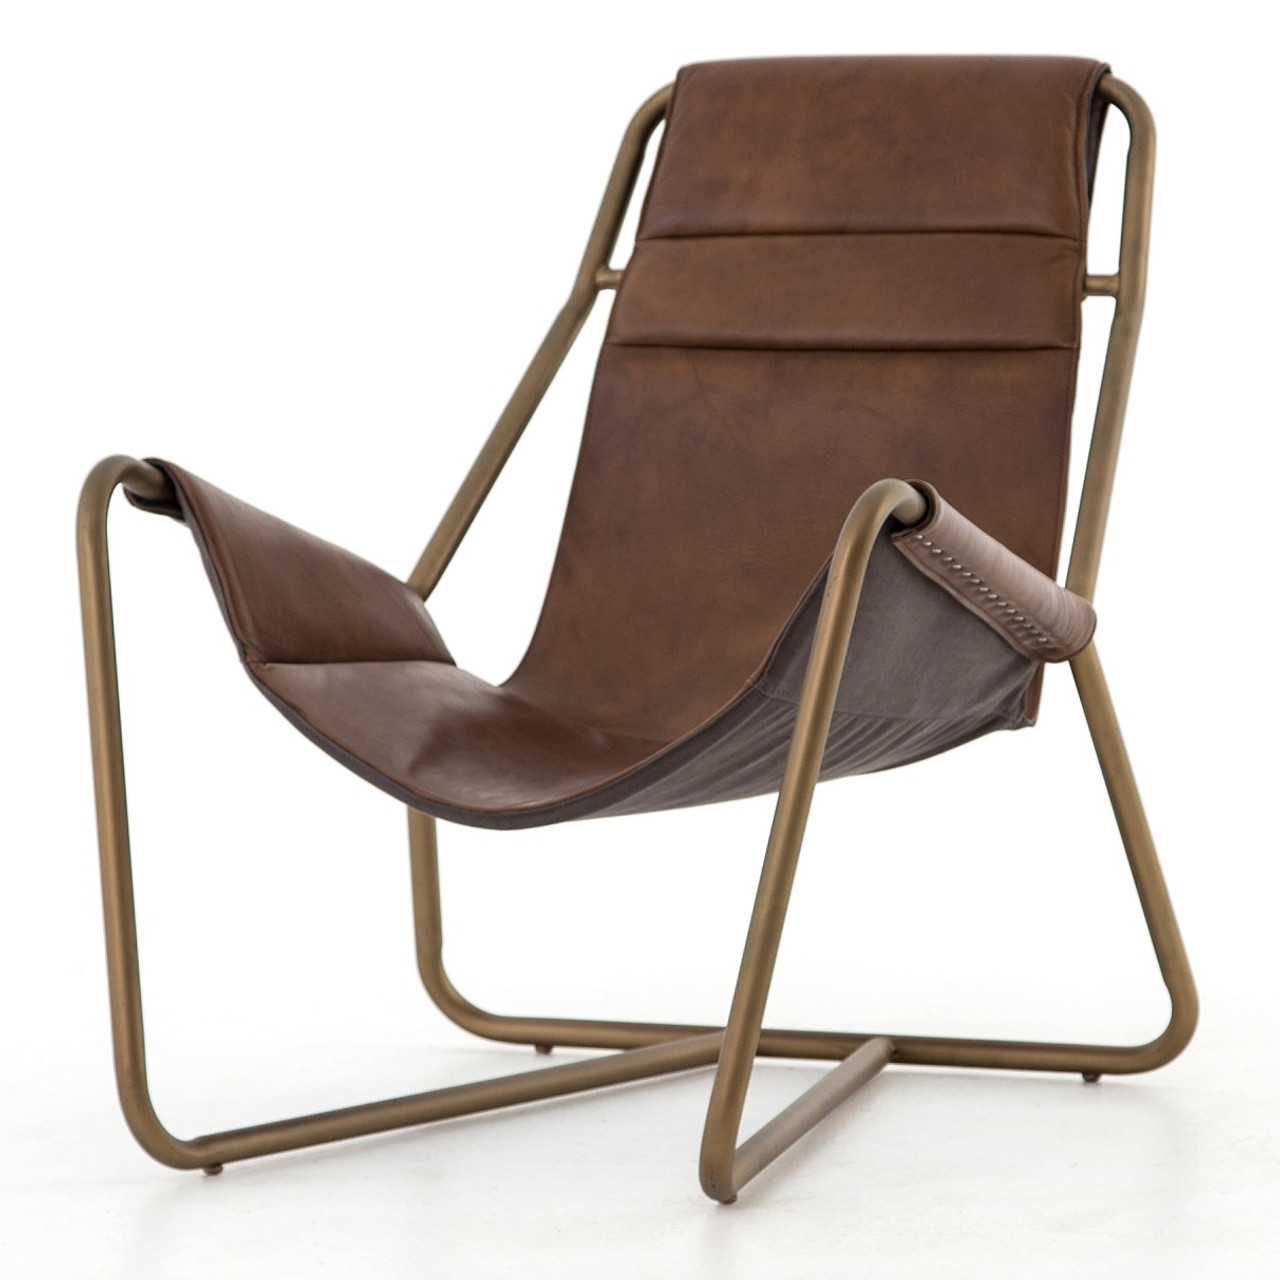 leather sling chairs swivel upholstered vera mid century brown lounge brass zin home chair